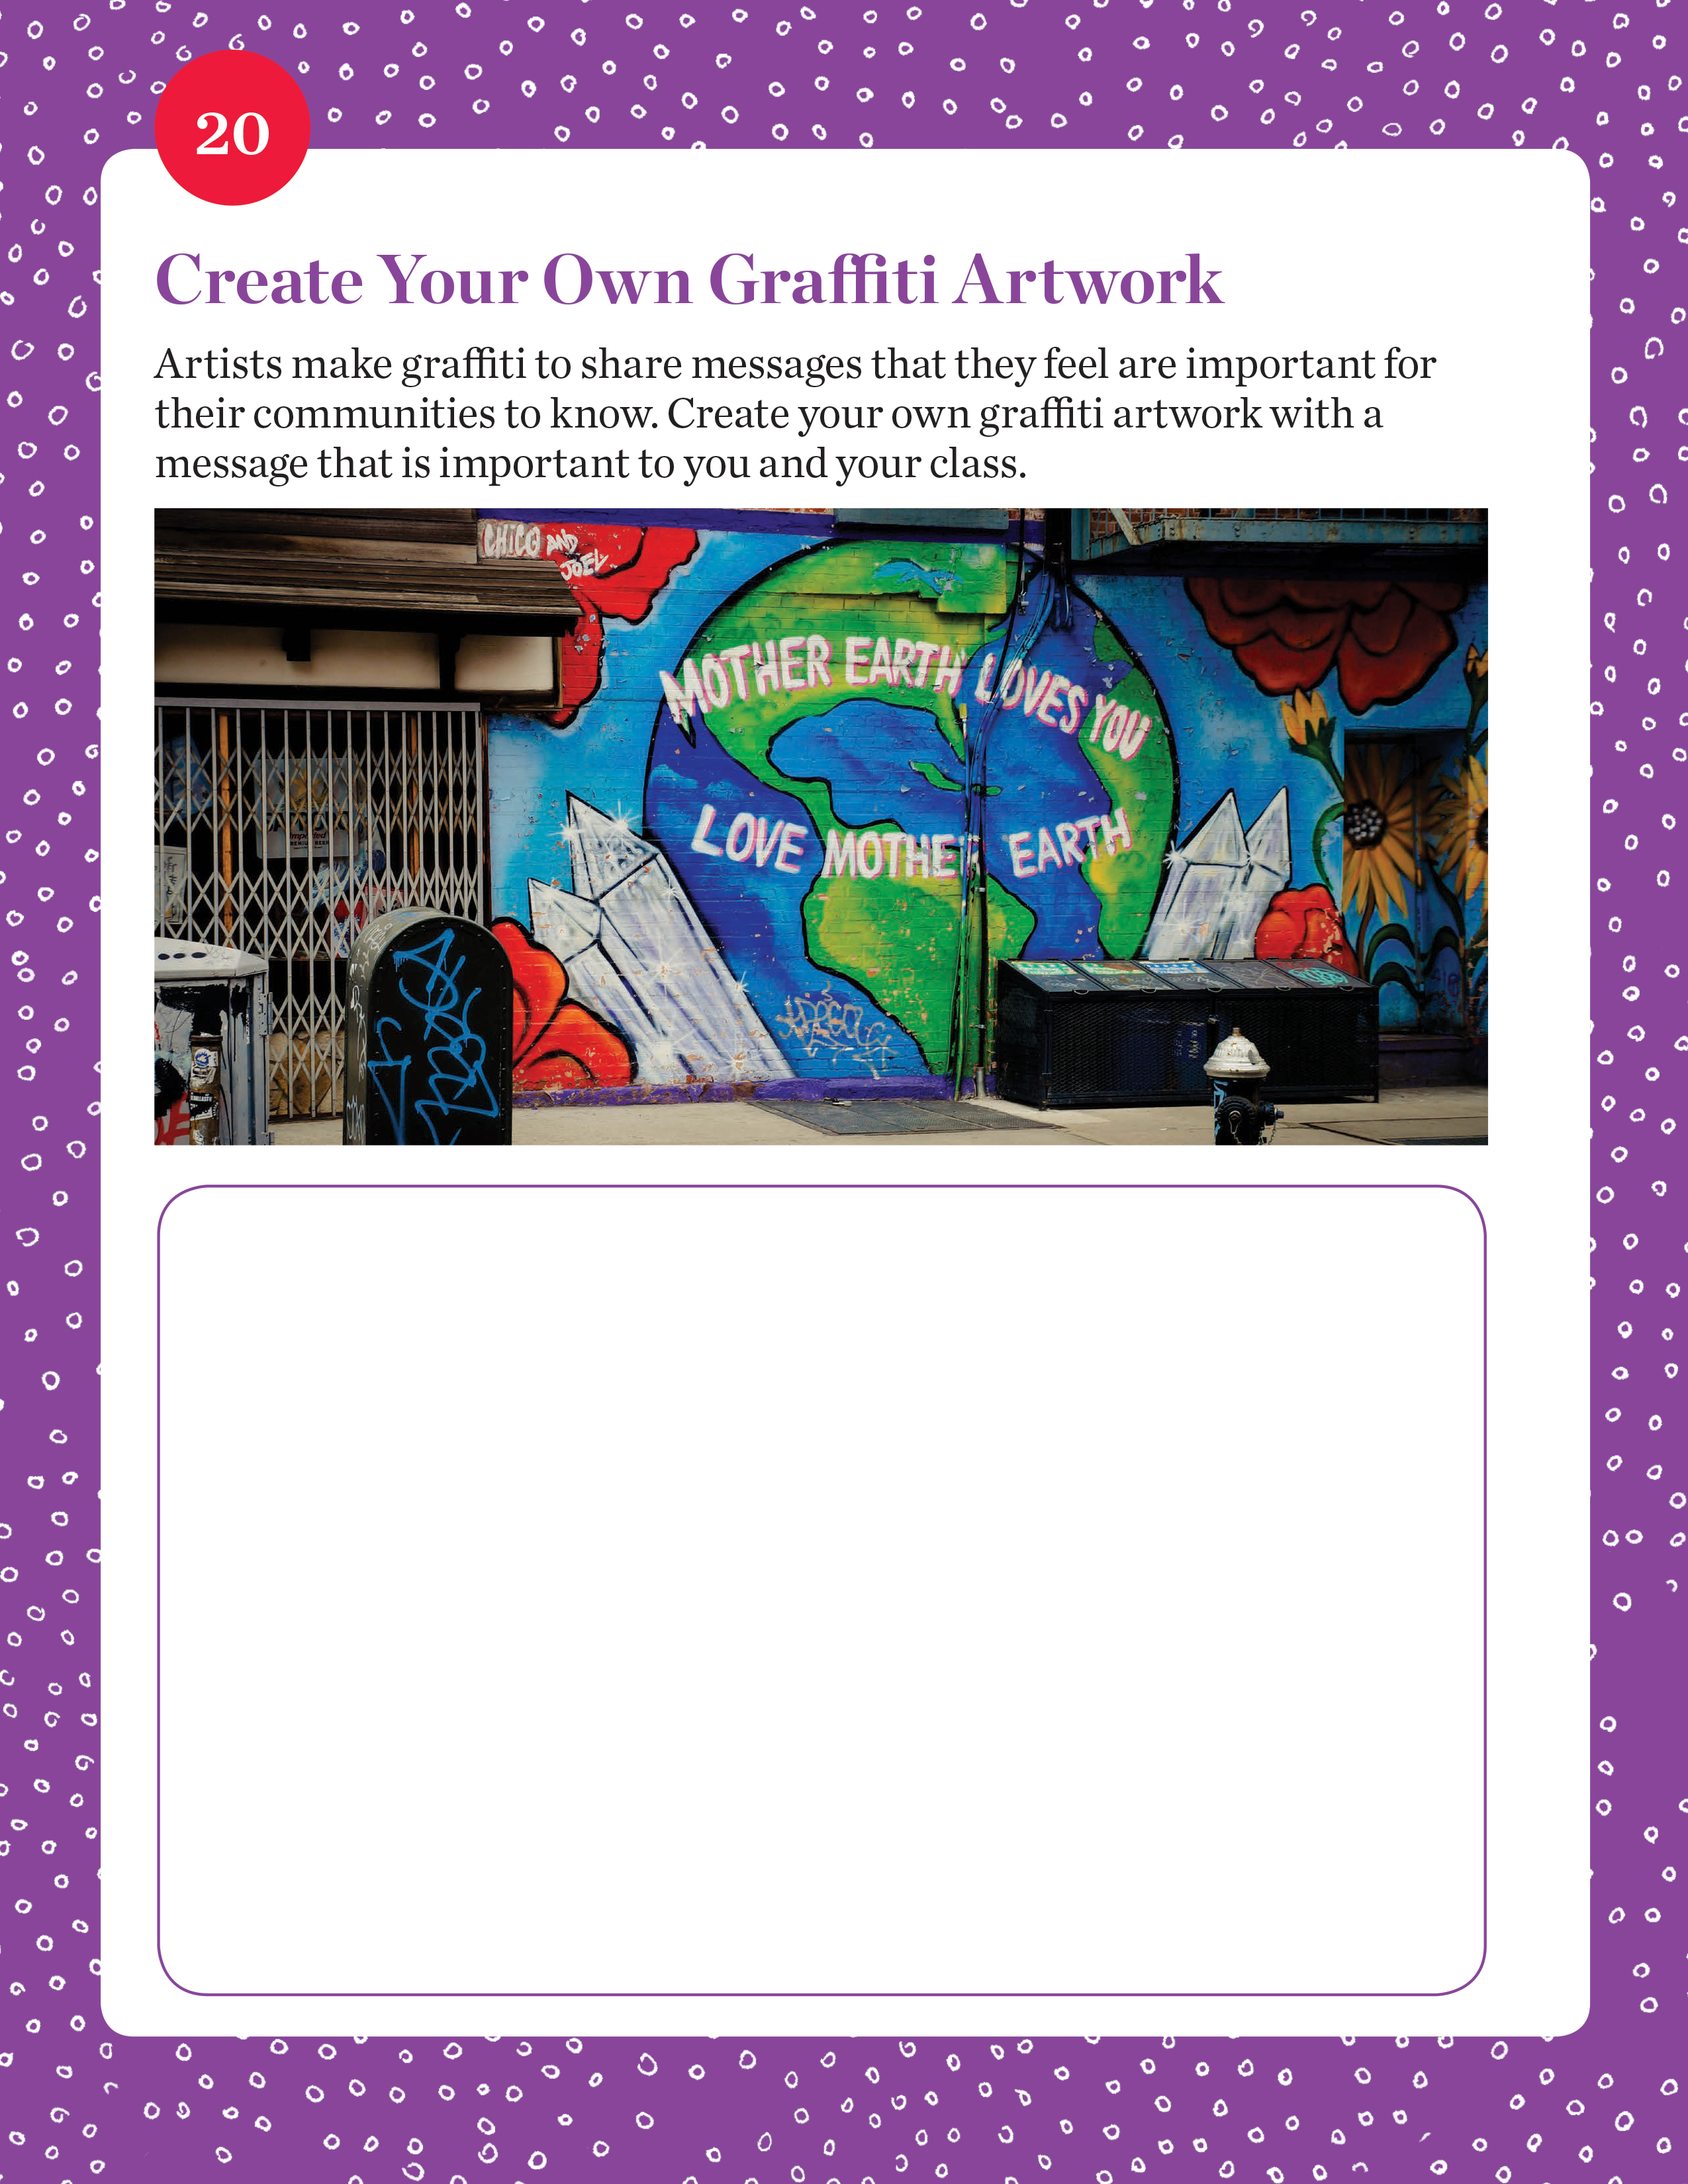 Create Your Own Graffiti Artwork student activity